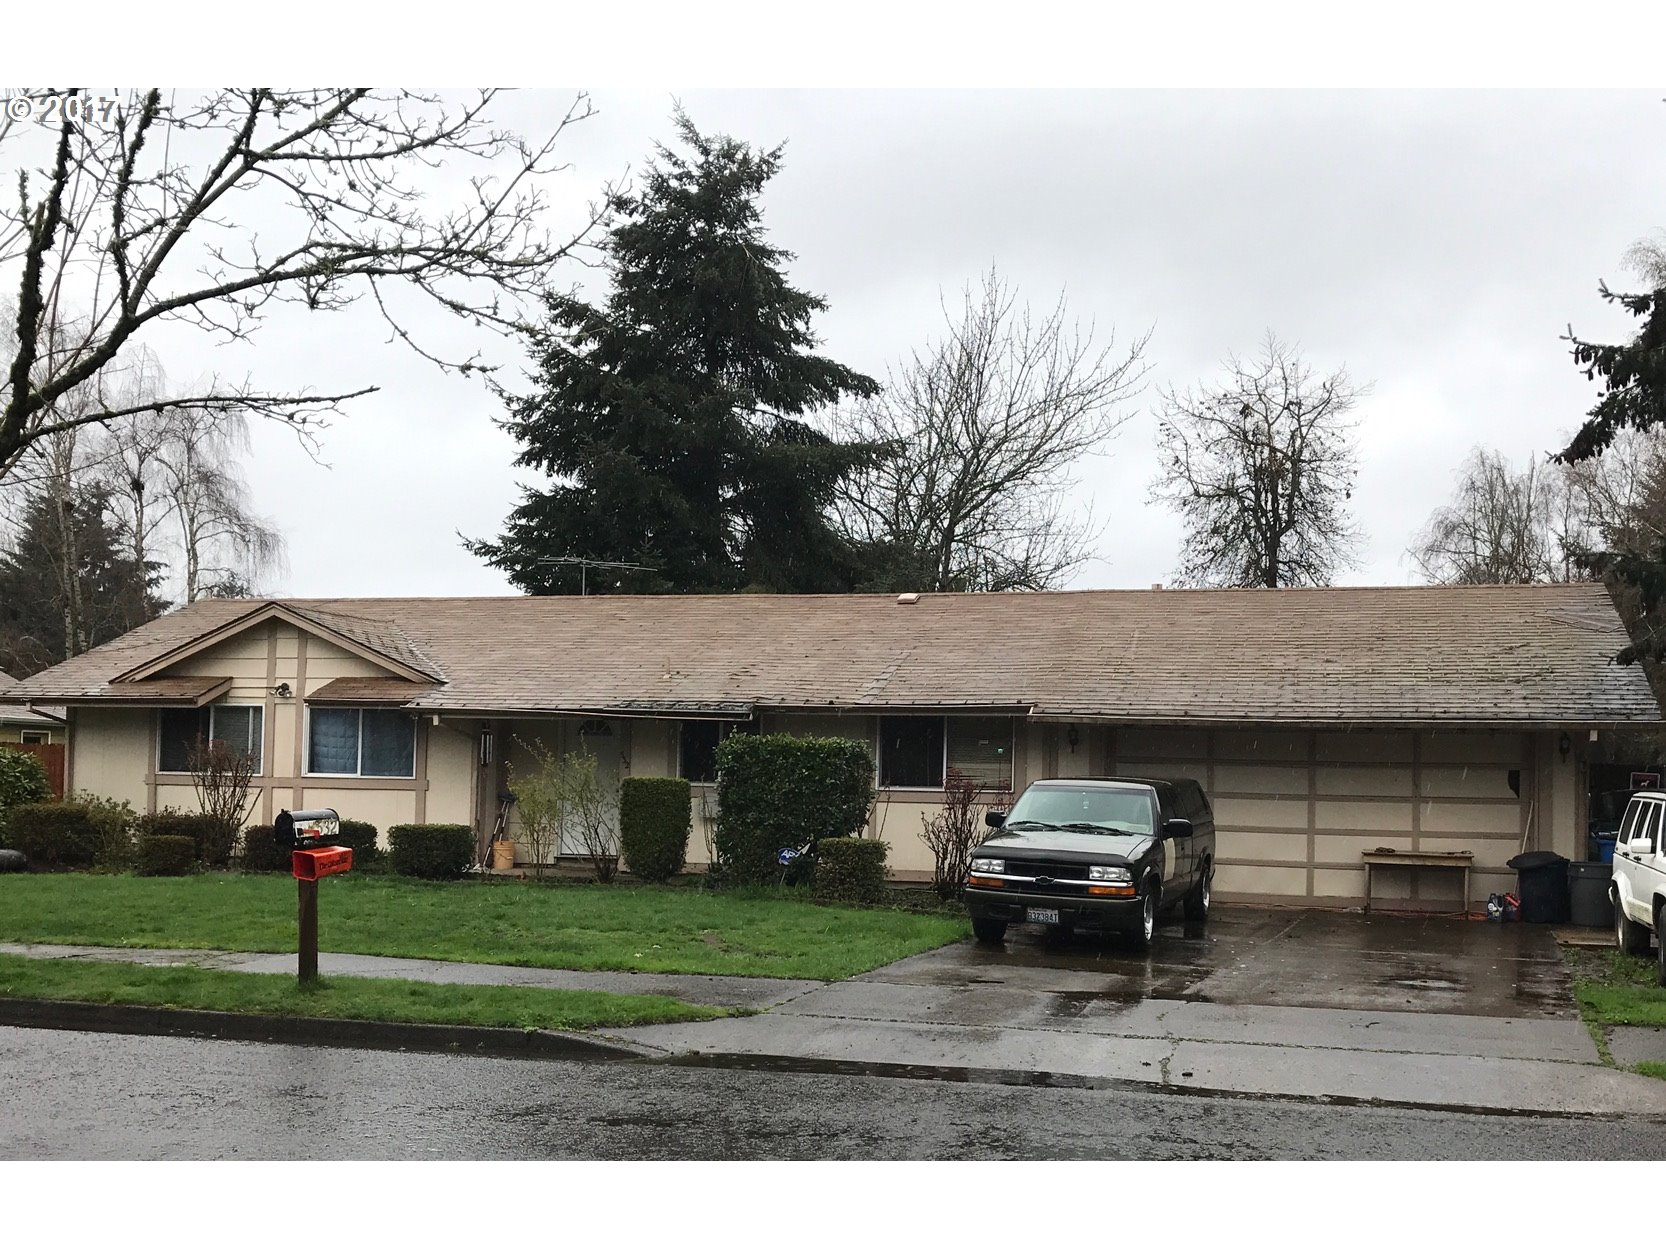 532 NW 82ND ST, Vancouver, WA 98665